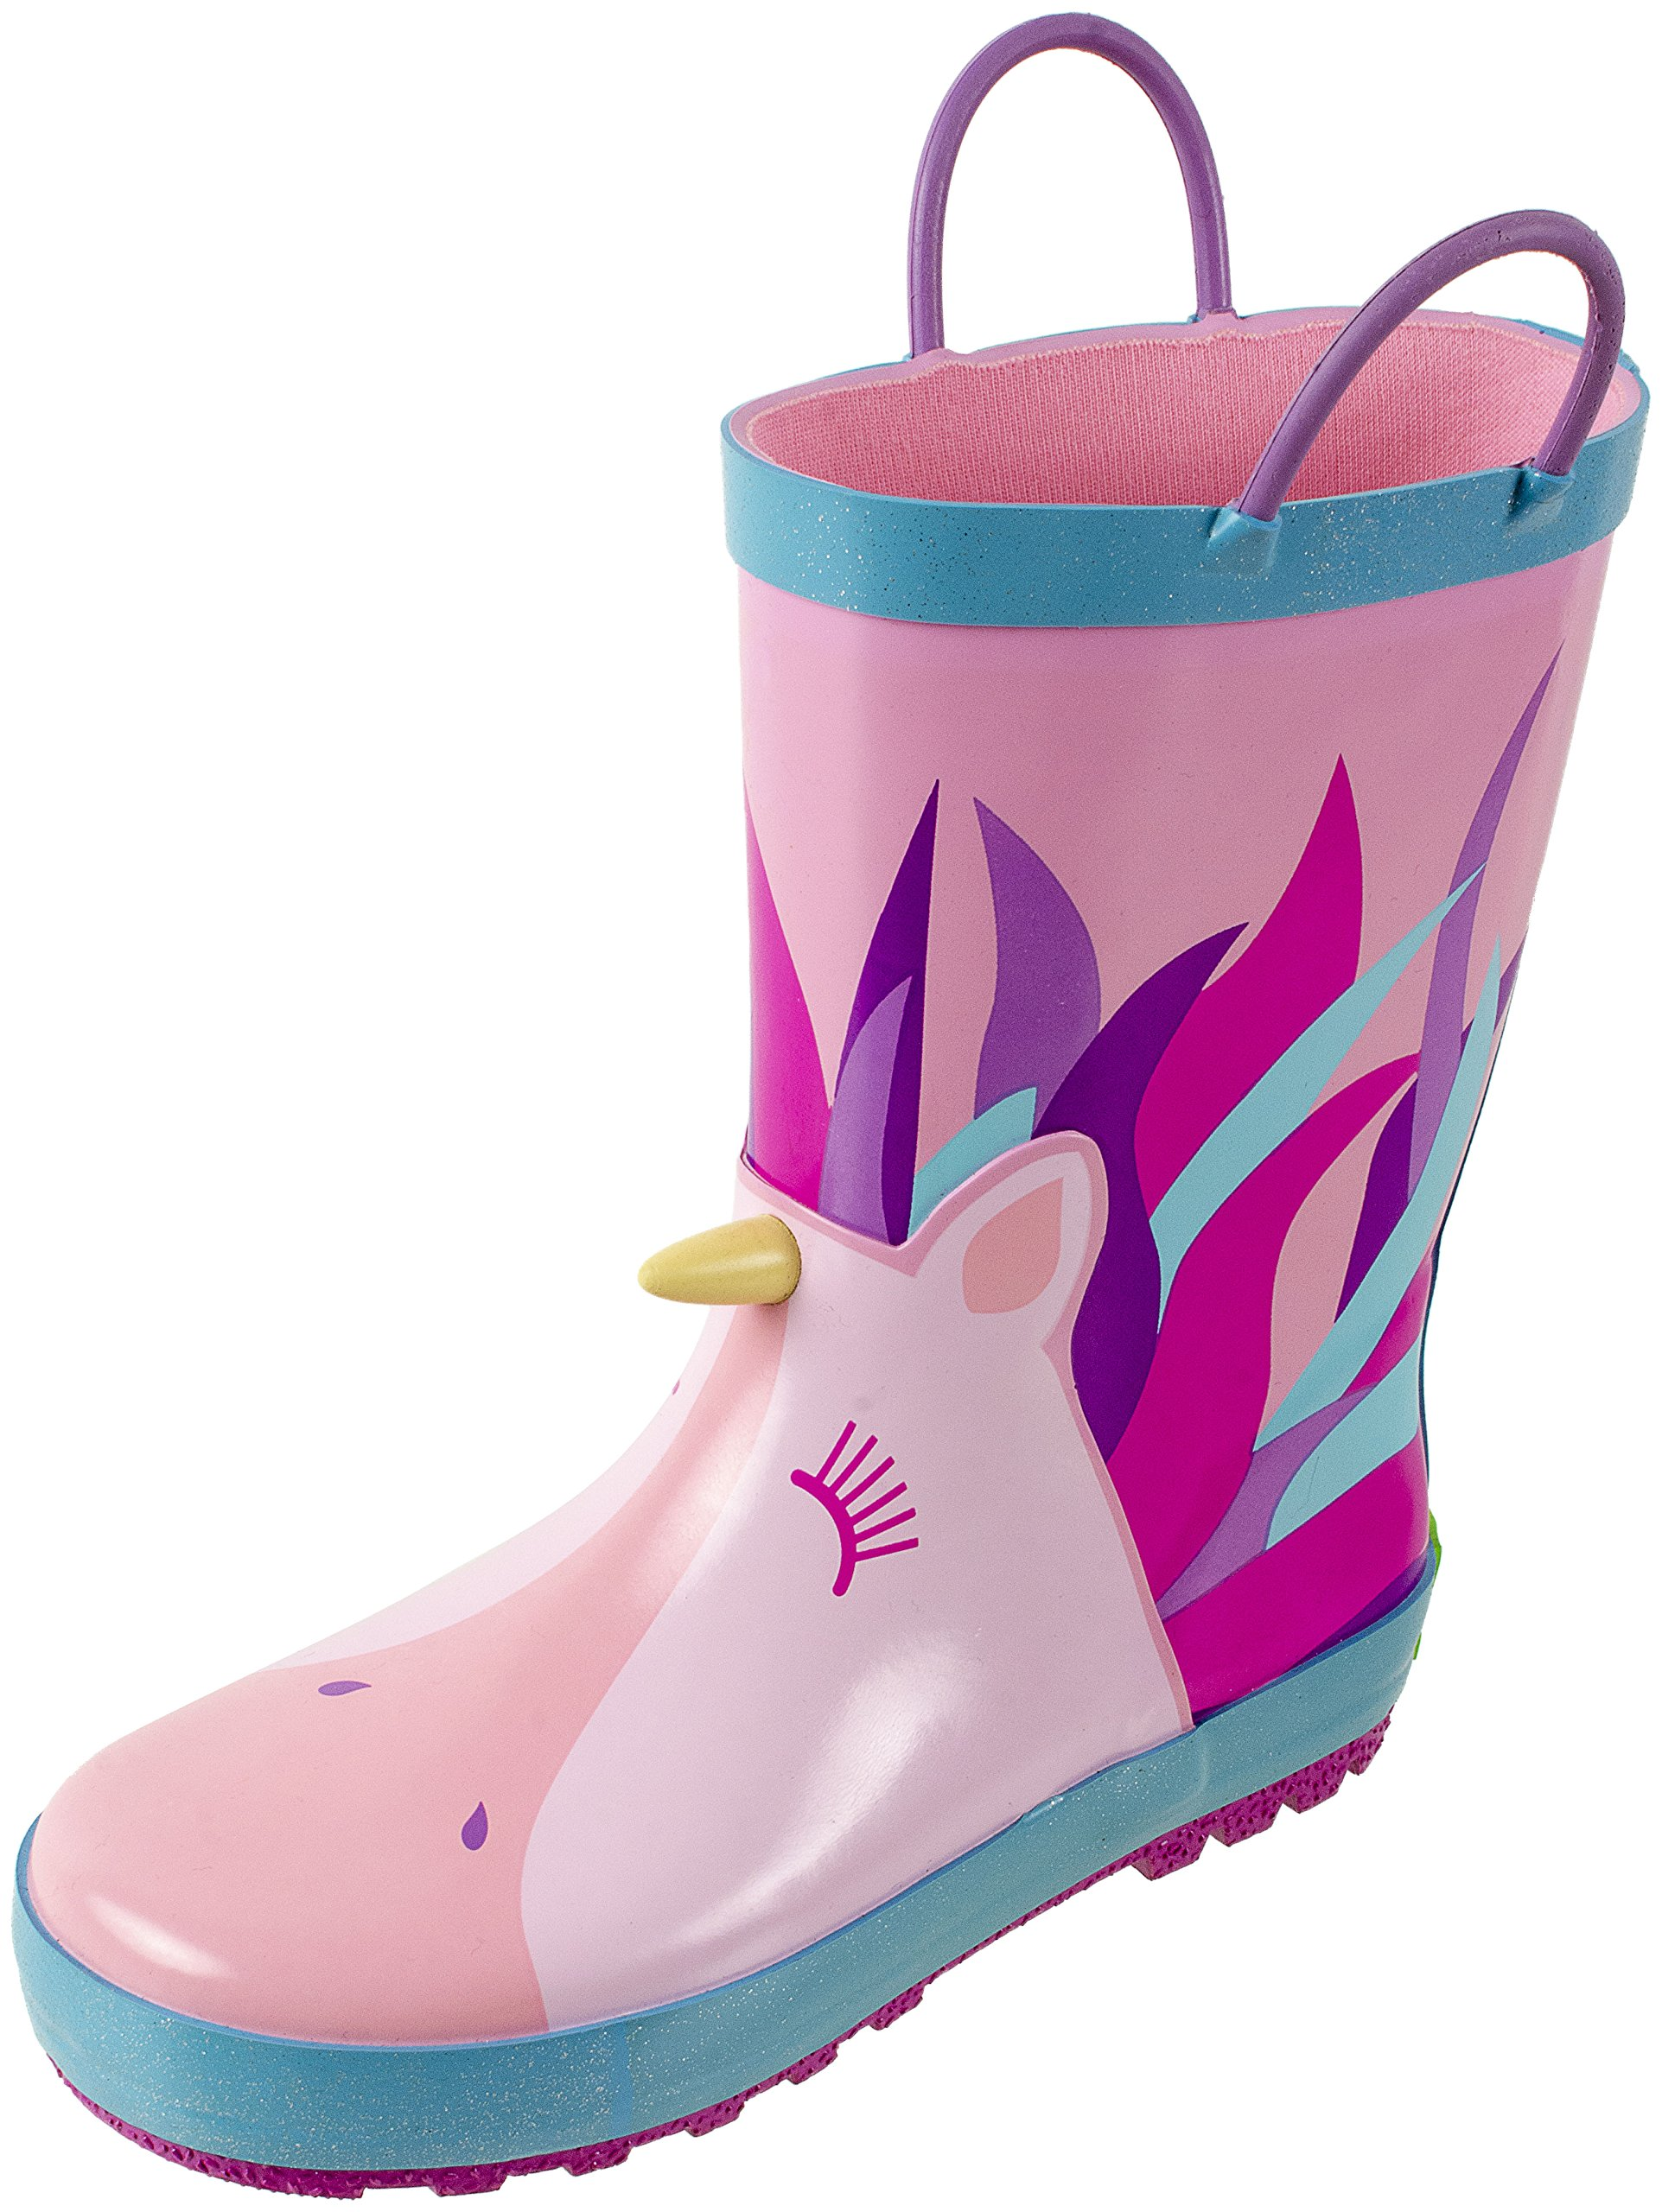 Rainbow Daze Unicorn Printed Waterproof Kids Rain Boots with Easy-on Handles, 100% Rubber, Ages 2 to 9 (9/10, Unicorn Pink)